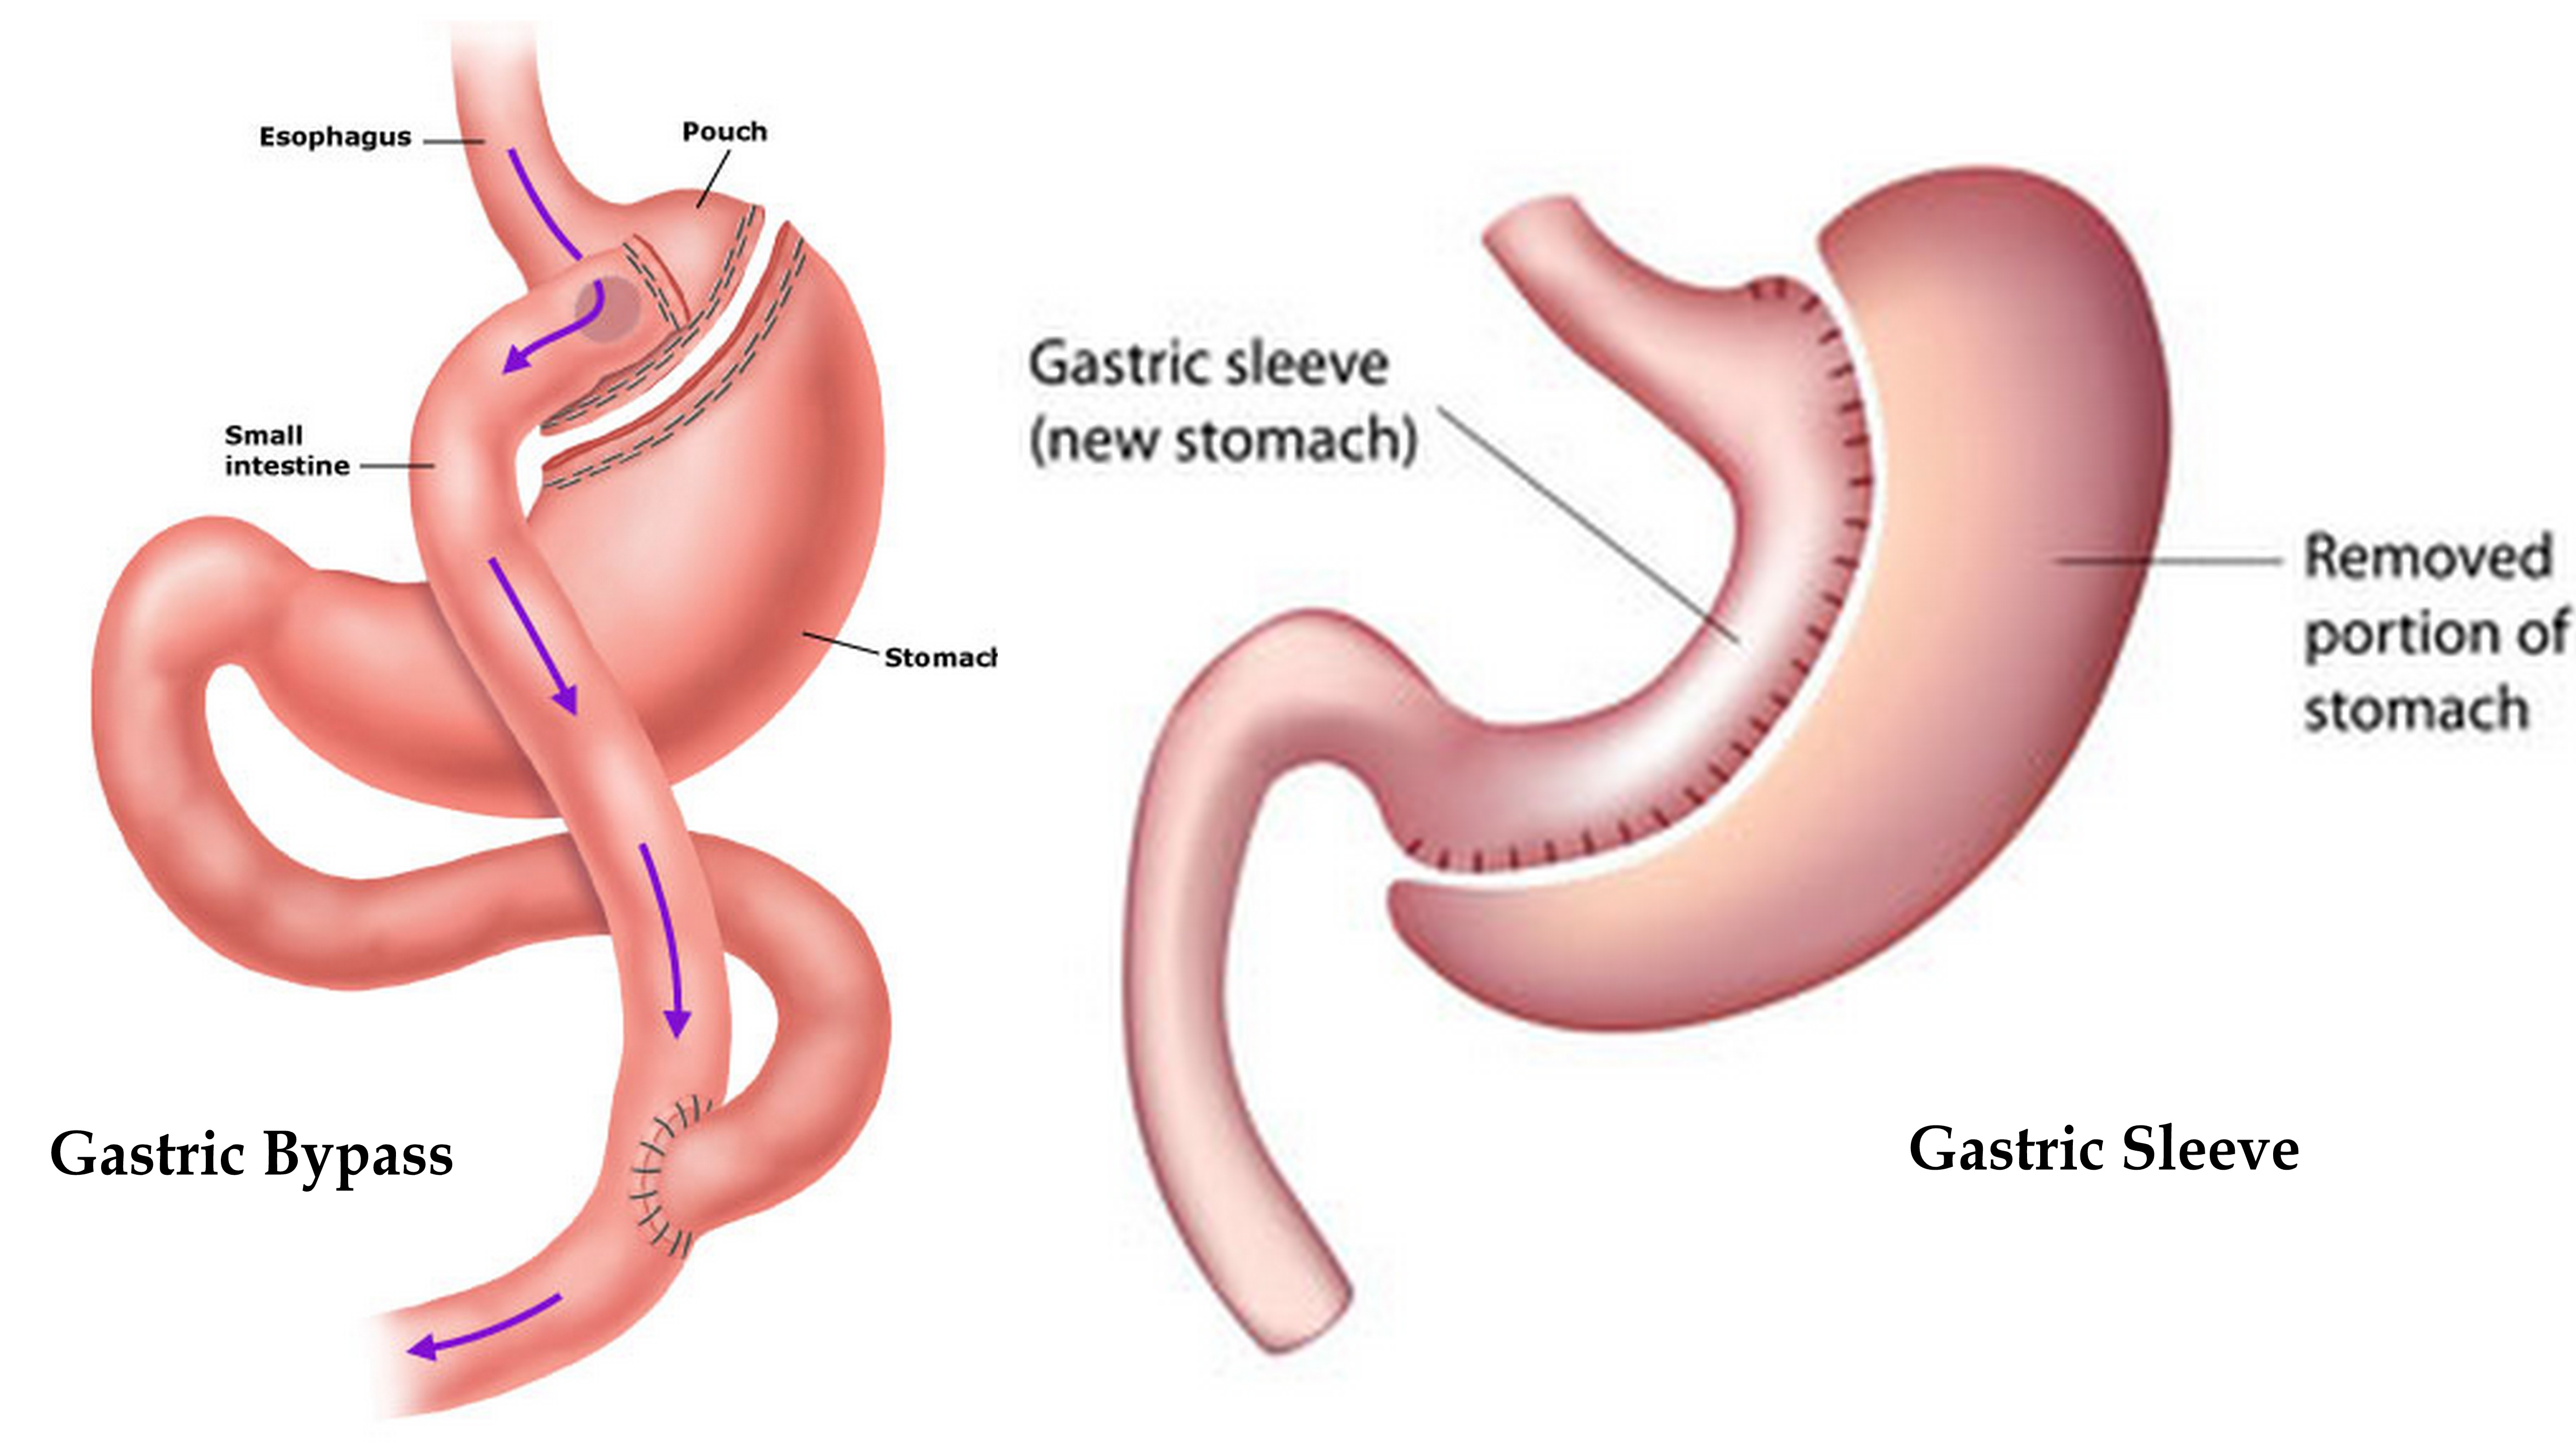 Gastric Sleeve versus Bypass